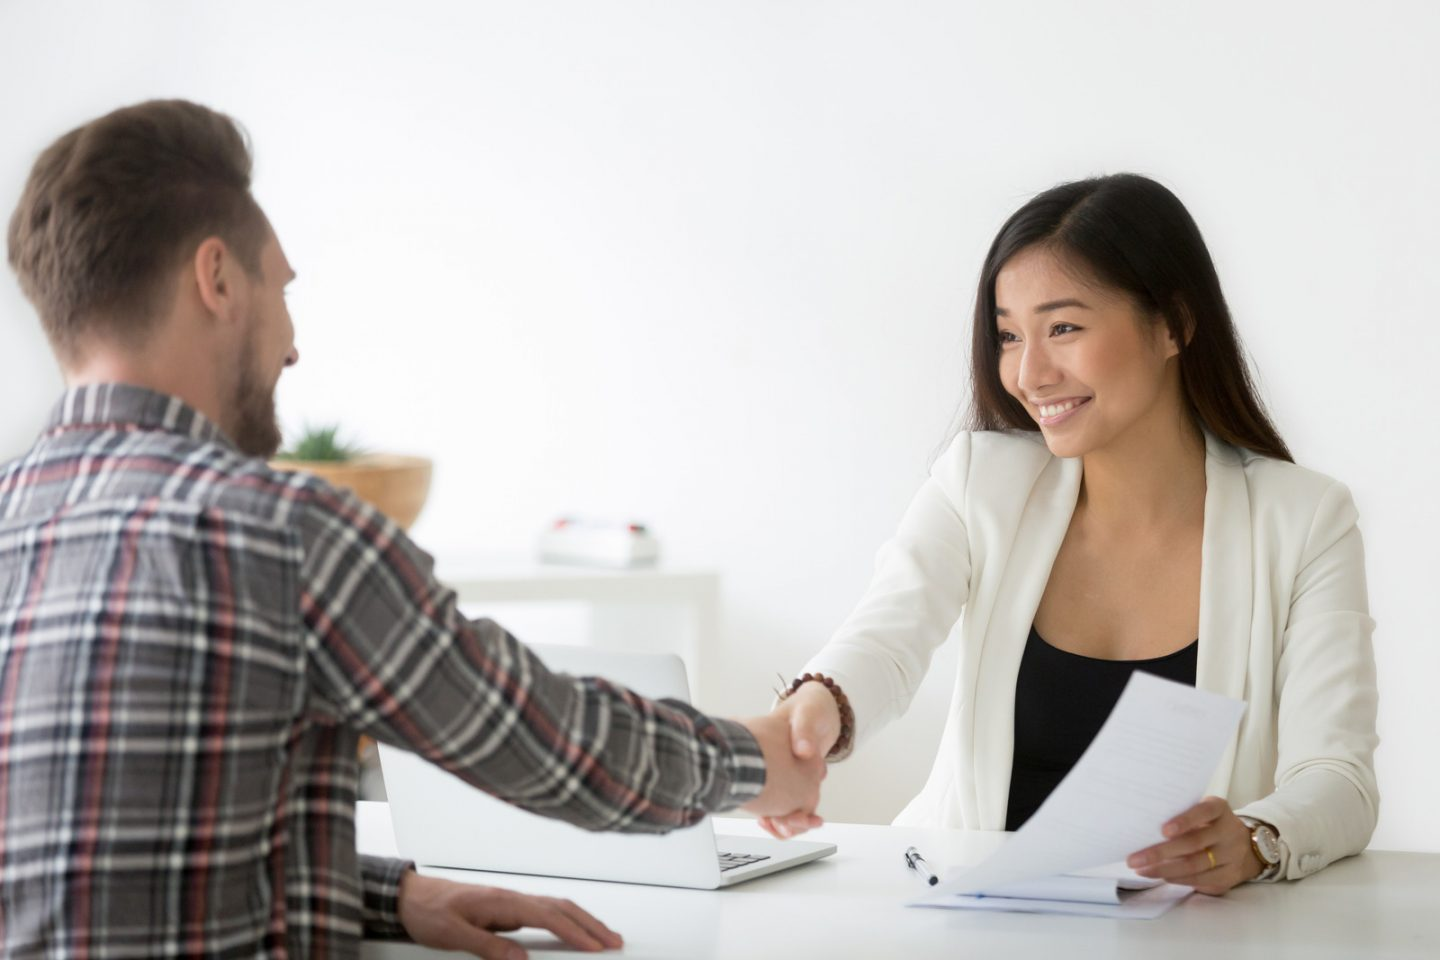 Smiling asian businesswoman handshaking businessman hiring candidate at job interview or signing contract making deal with customer, happy chinese financial advisor and satisfied client shaking hands